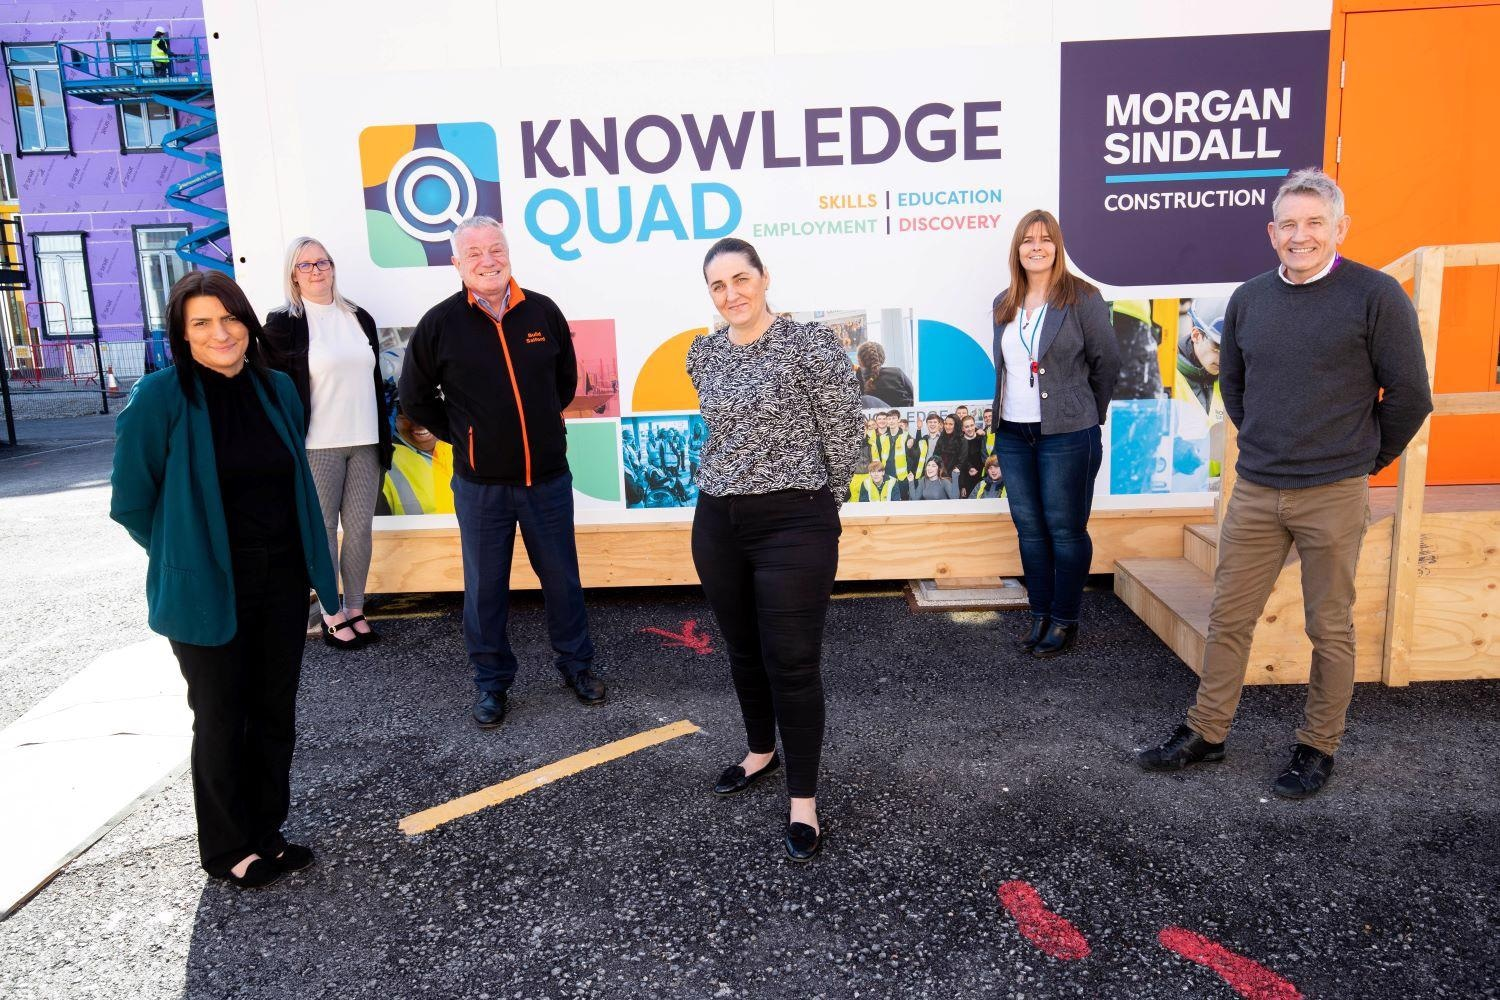 Morgan Sindall Construction Brings Skills Boost to Salford with Knowledge Quad